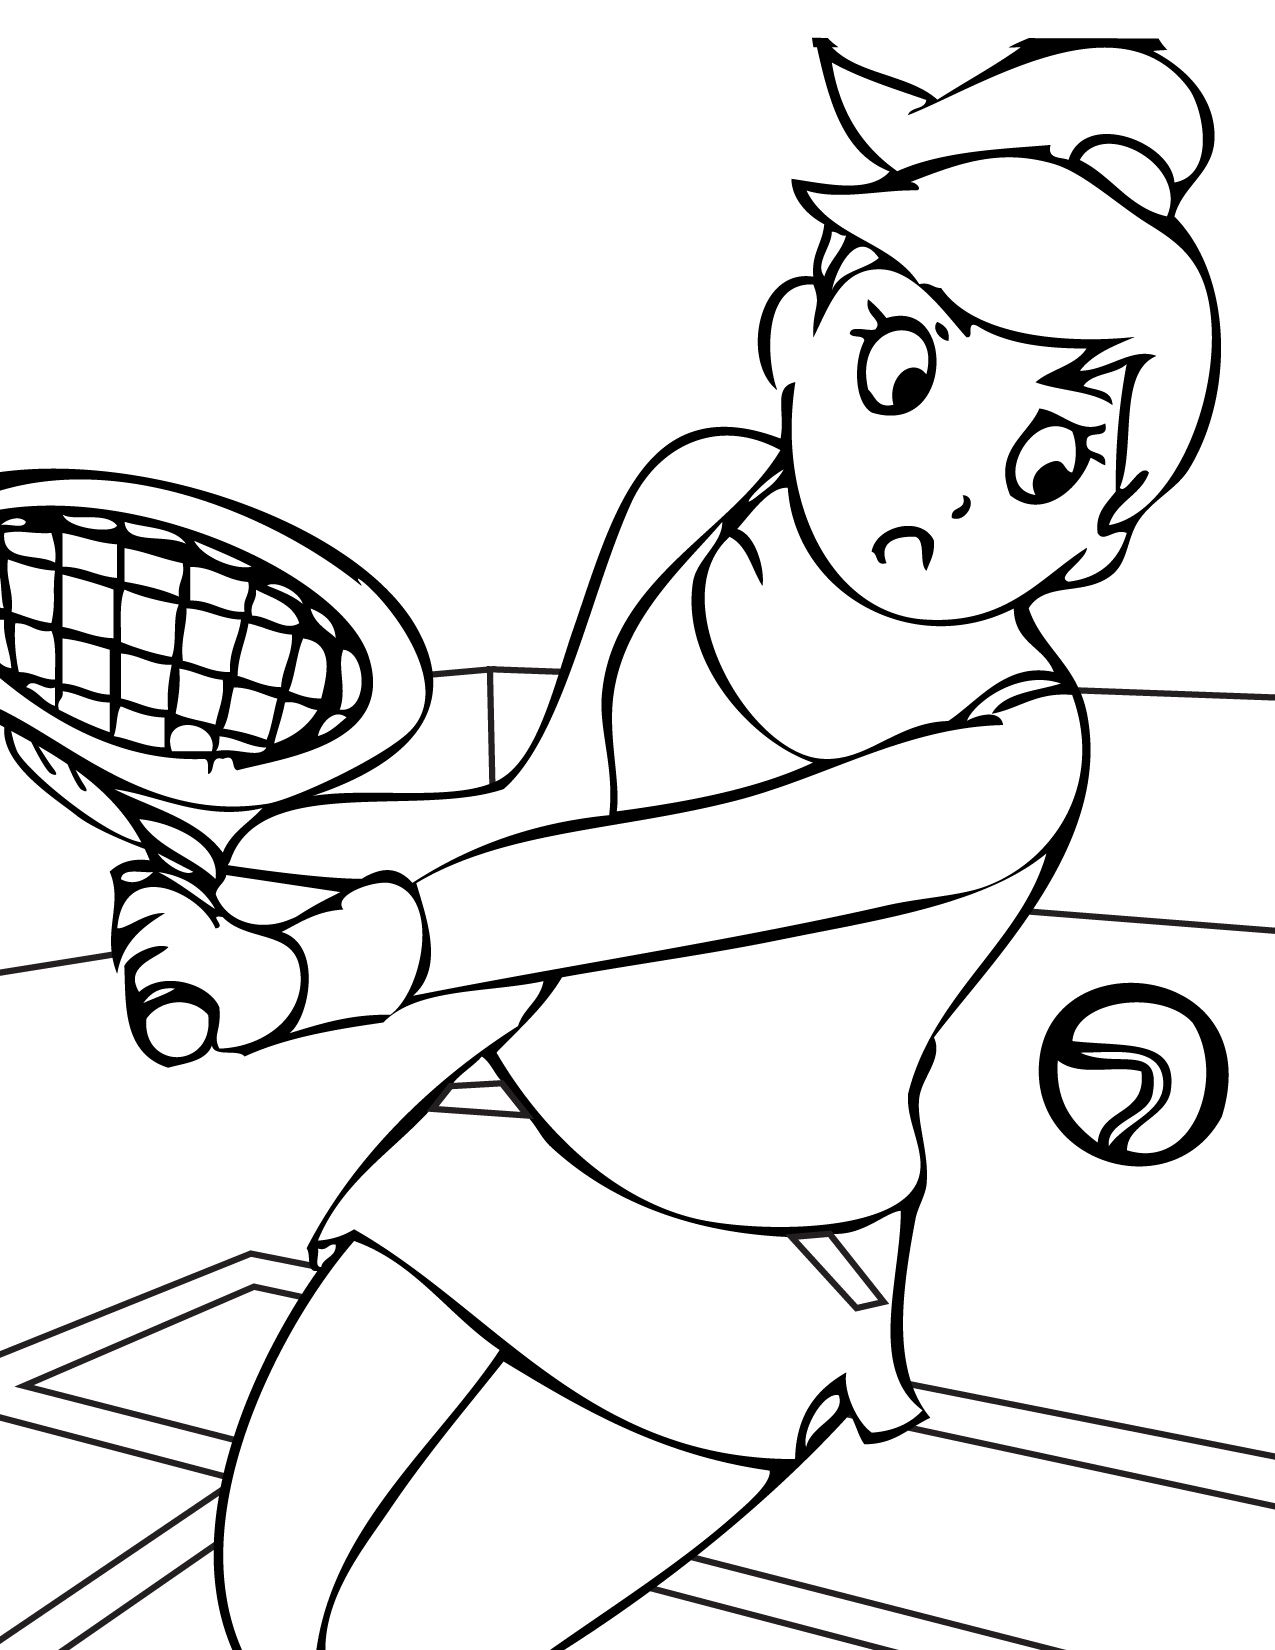 Sports Coloring Pages For Kindergarten Sports Coloring Pages For Kindergarten Coloringpages Colorin Sports Coloring Pages Free Coloring Pages Coloring Pages